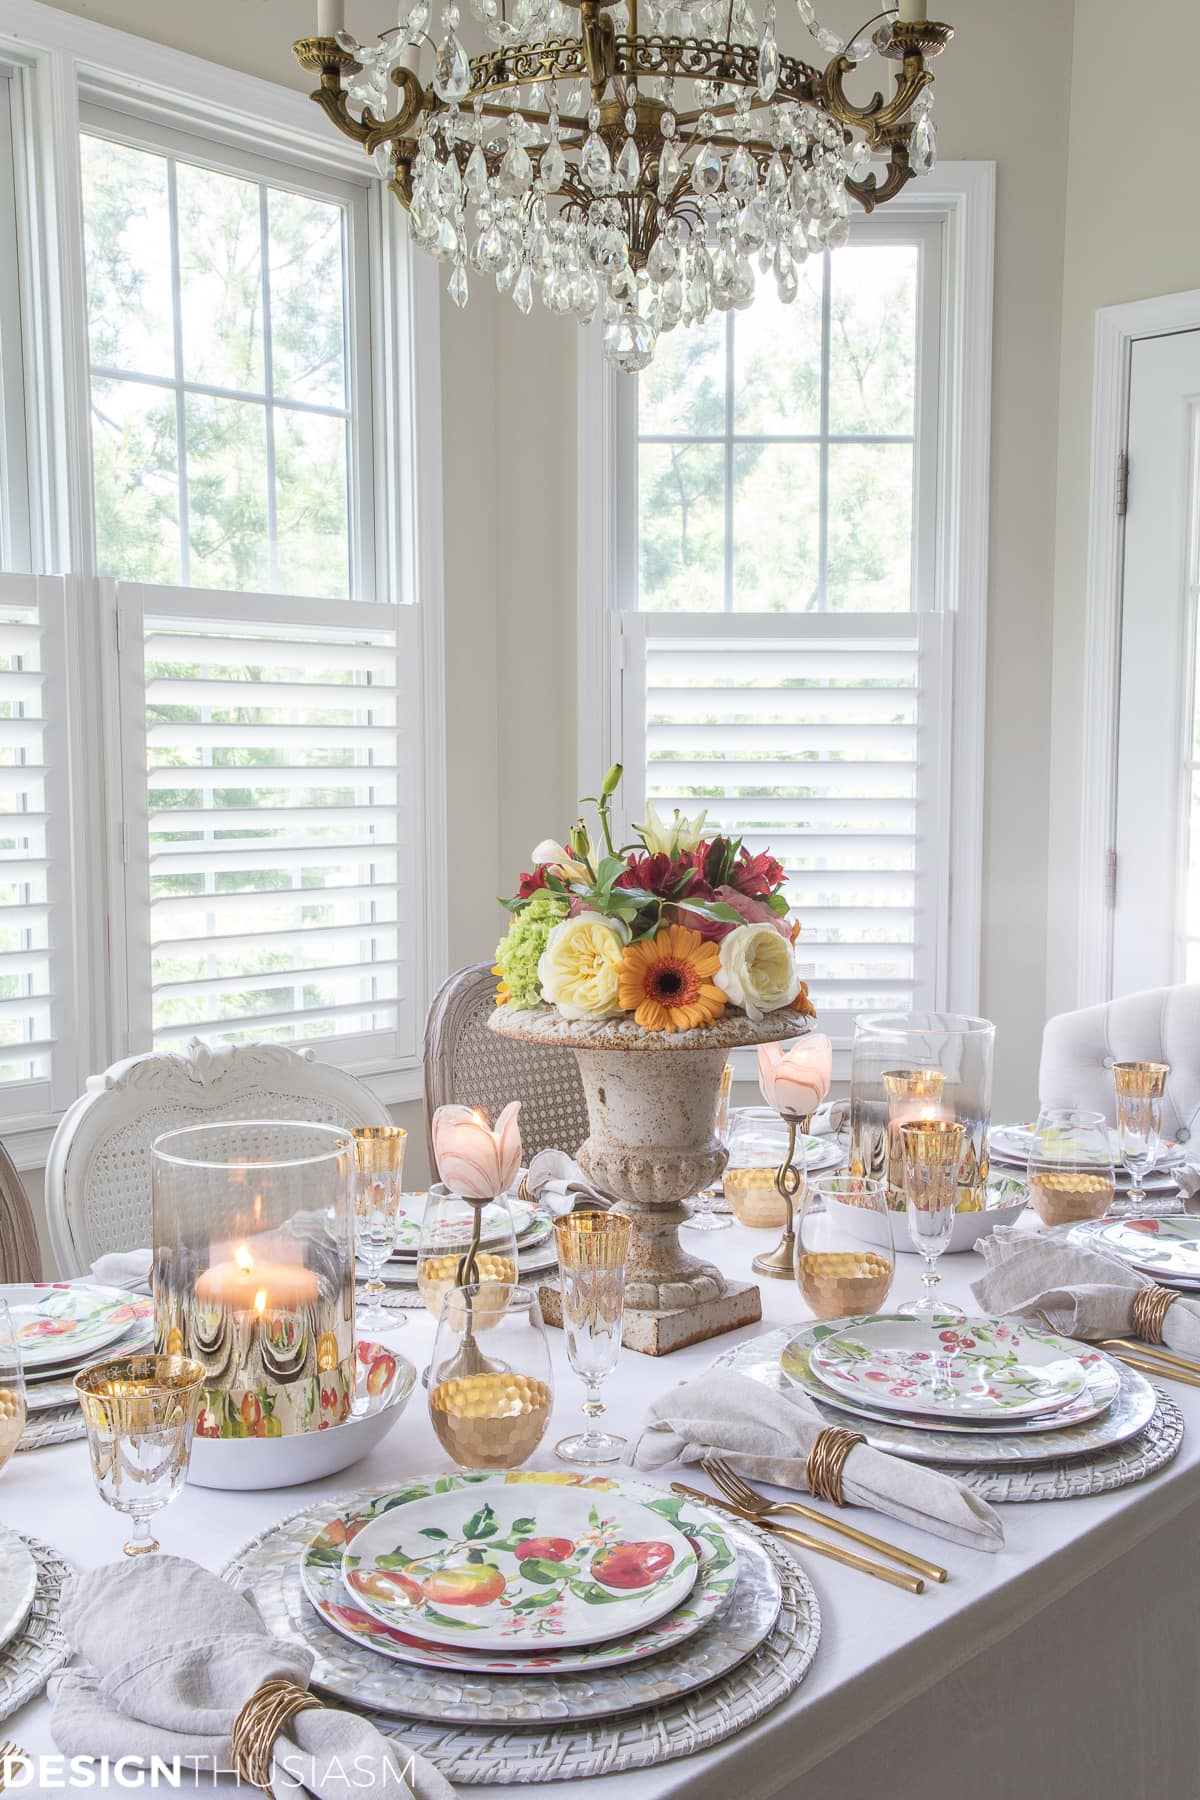 Insanely Gorgeous Informal Table Setting Ideas On A Budget